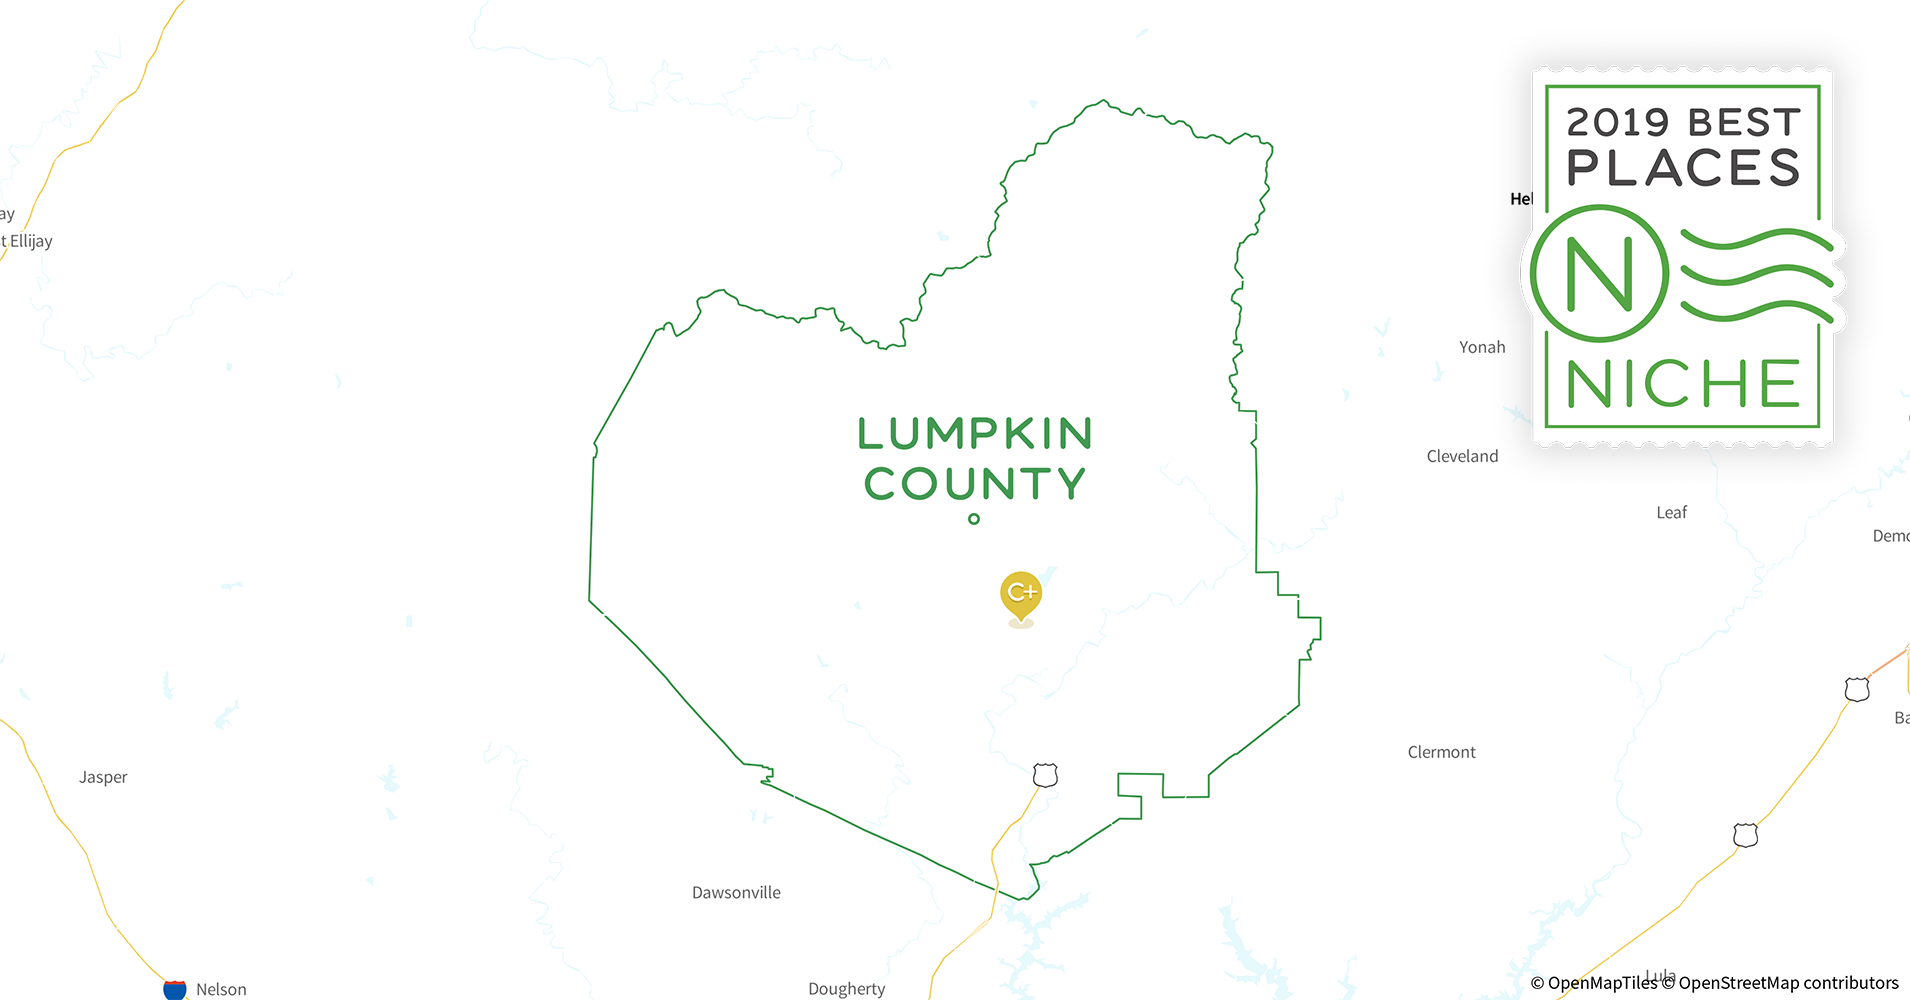 2019 Best Places to Retire in Lumpkin County, GA - Niche